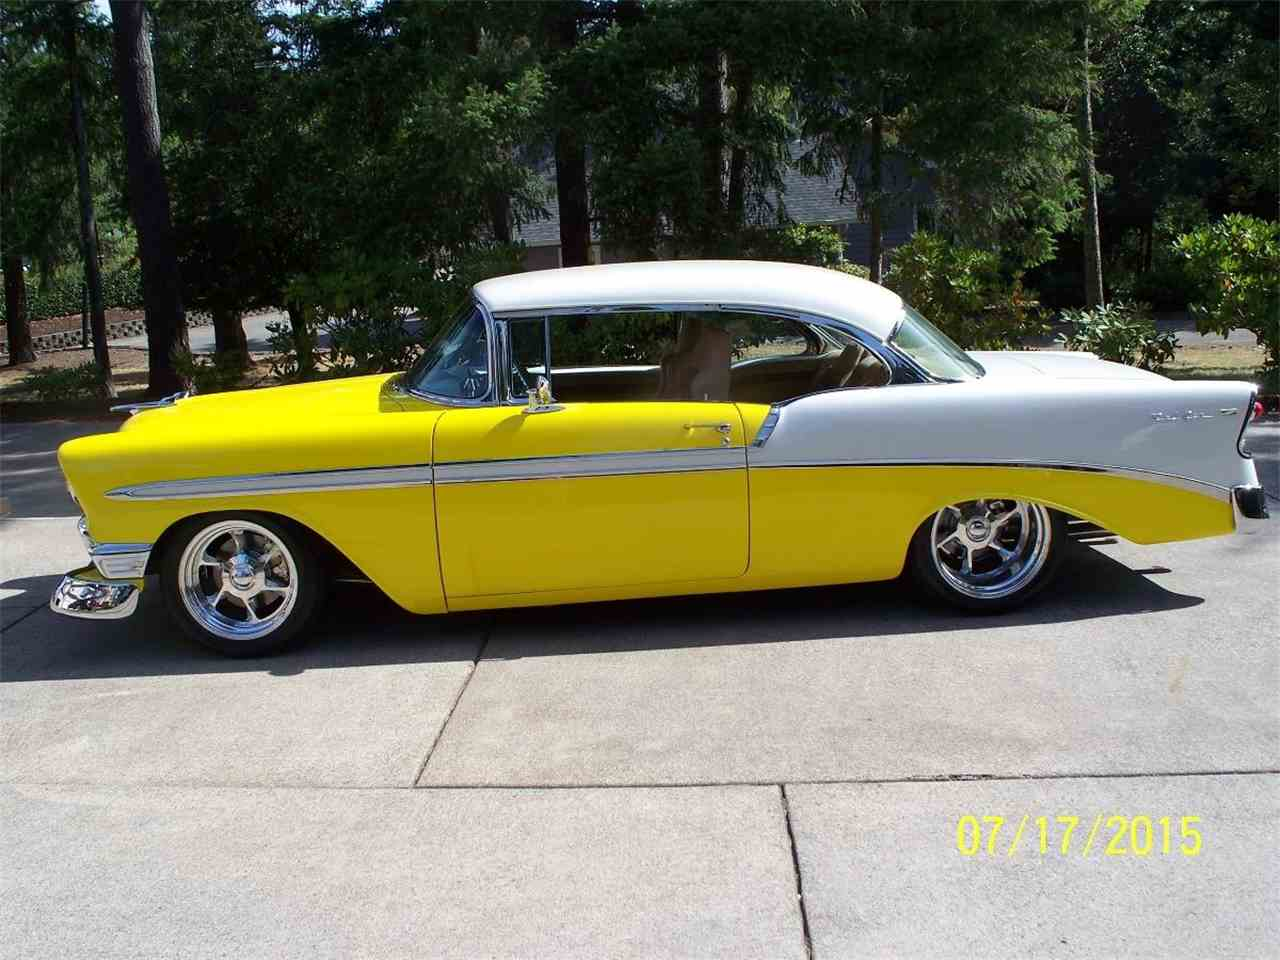 1956 chevrolet bel air for sale classic car liquidators - 1956 Chevrolet Bel Air For Sale Cc 703978